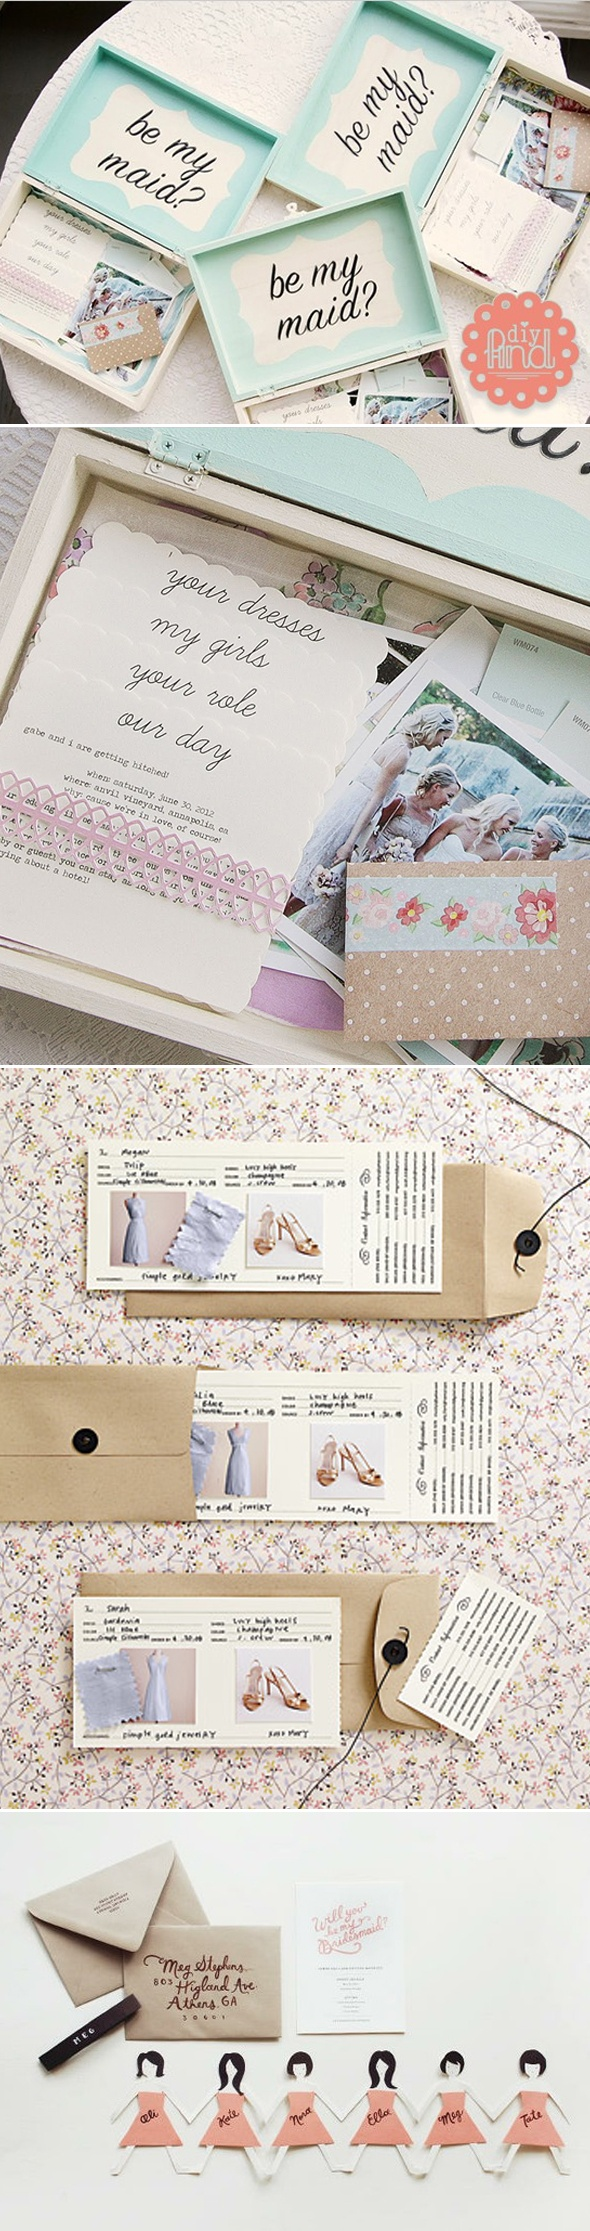 bridesmaid invitation. super cute invitation that includes a swatch the color/ fabric of the dress.